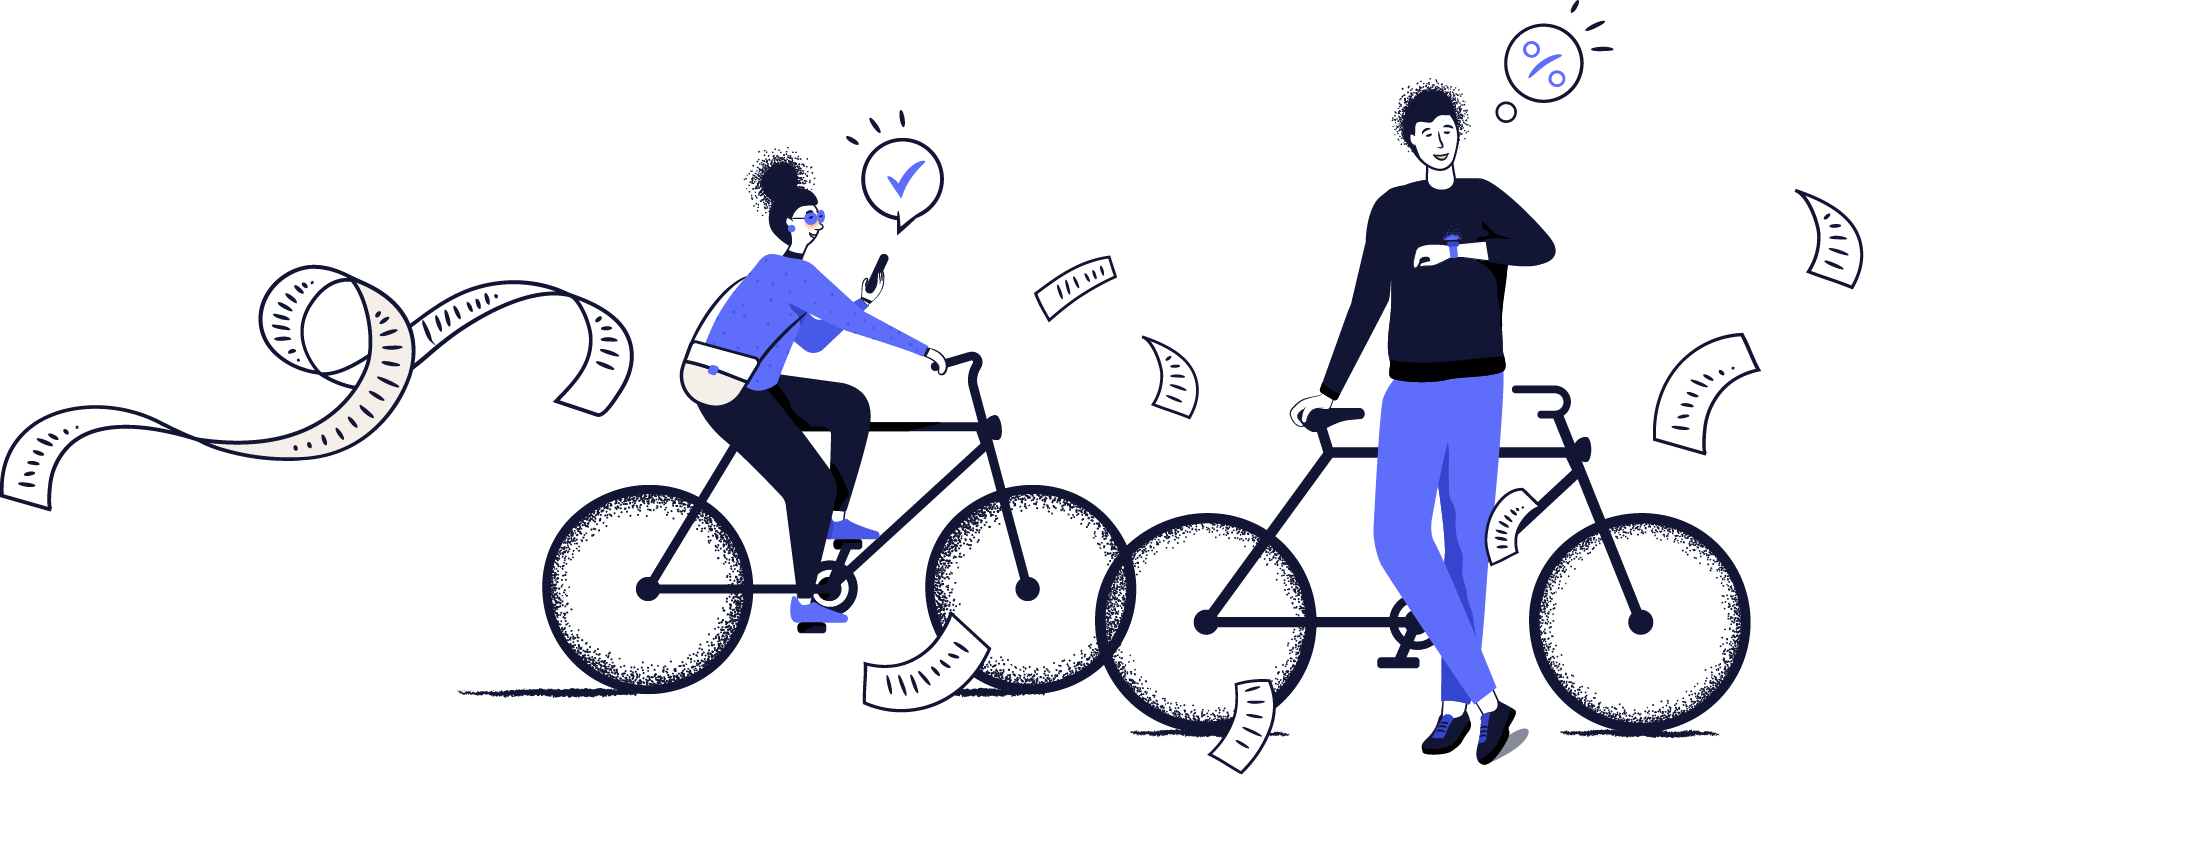 A woman and a man riding bikes among the abstract shapes interacting with their mobile devices.